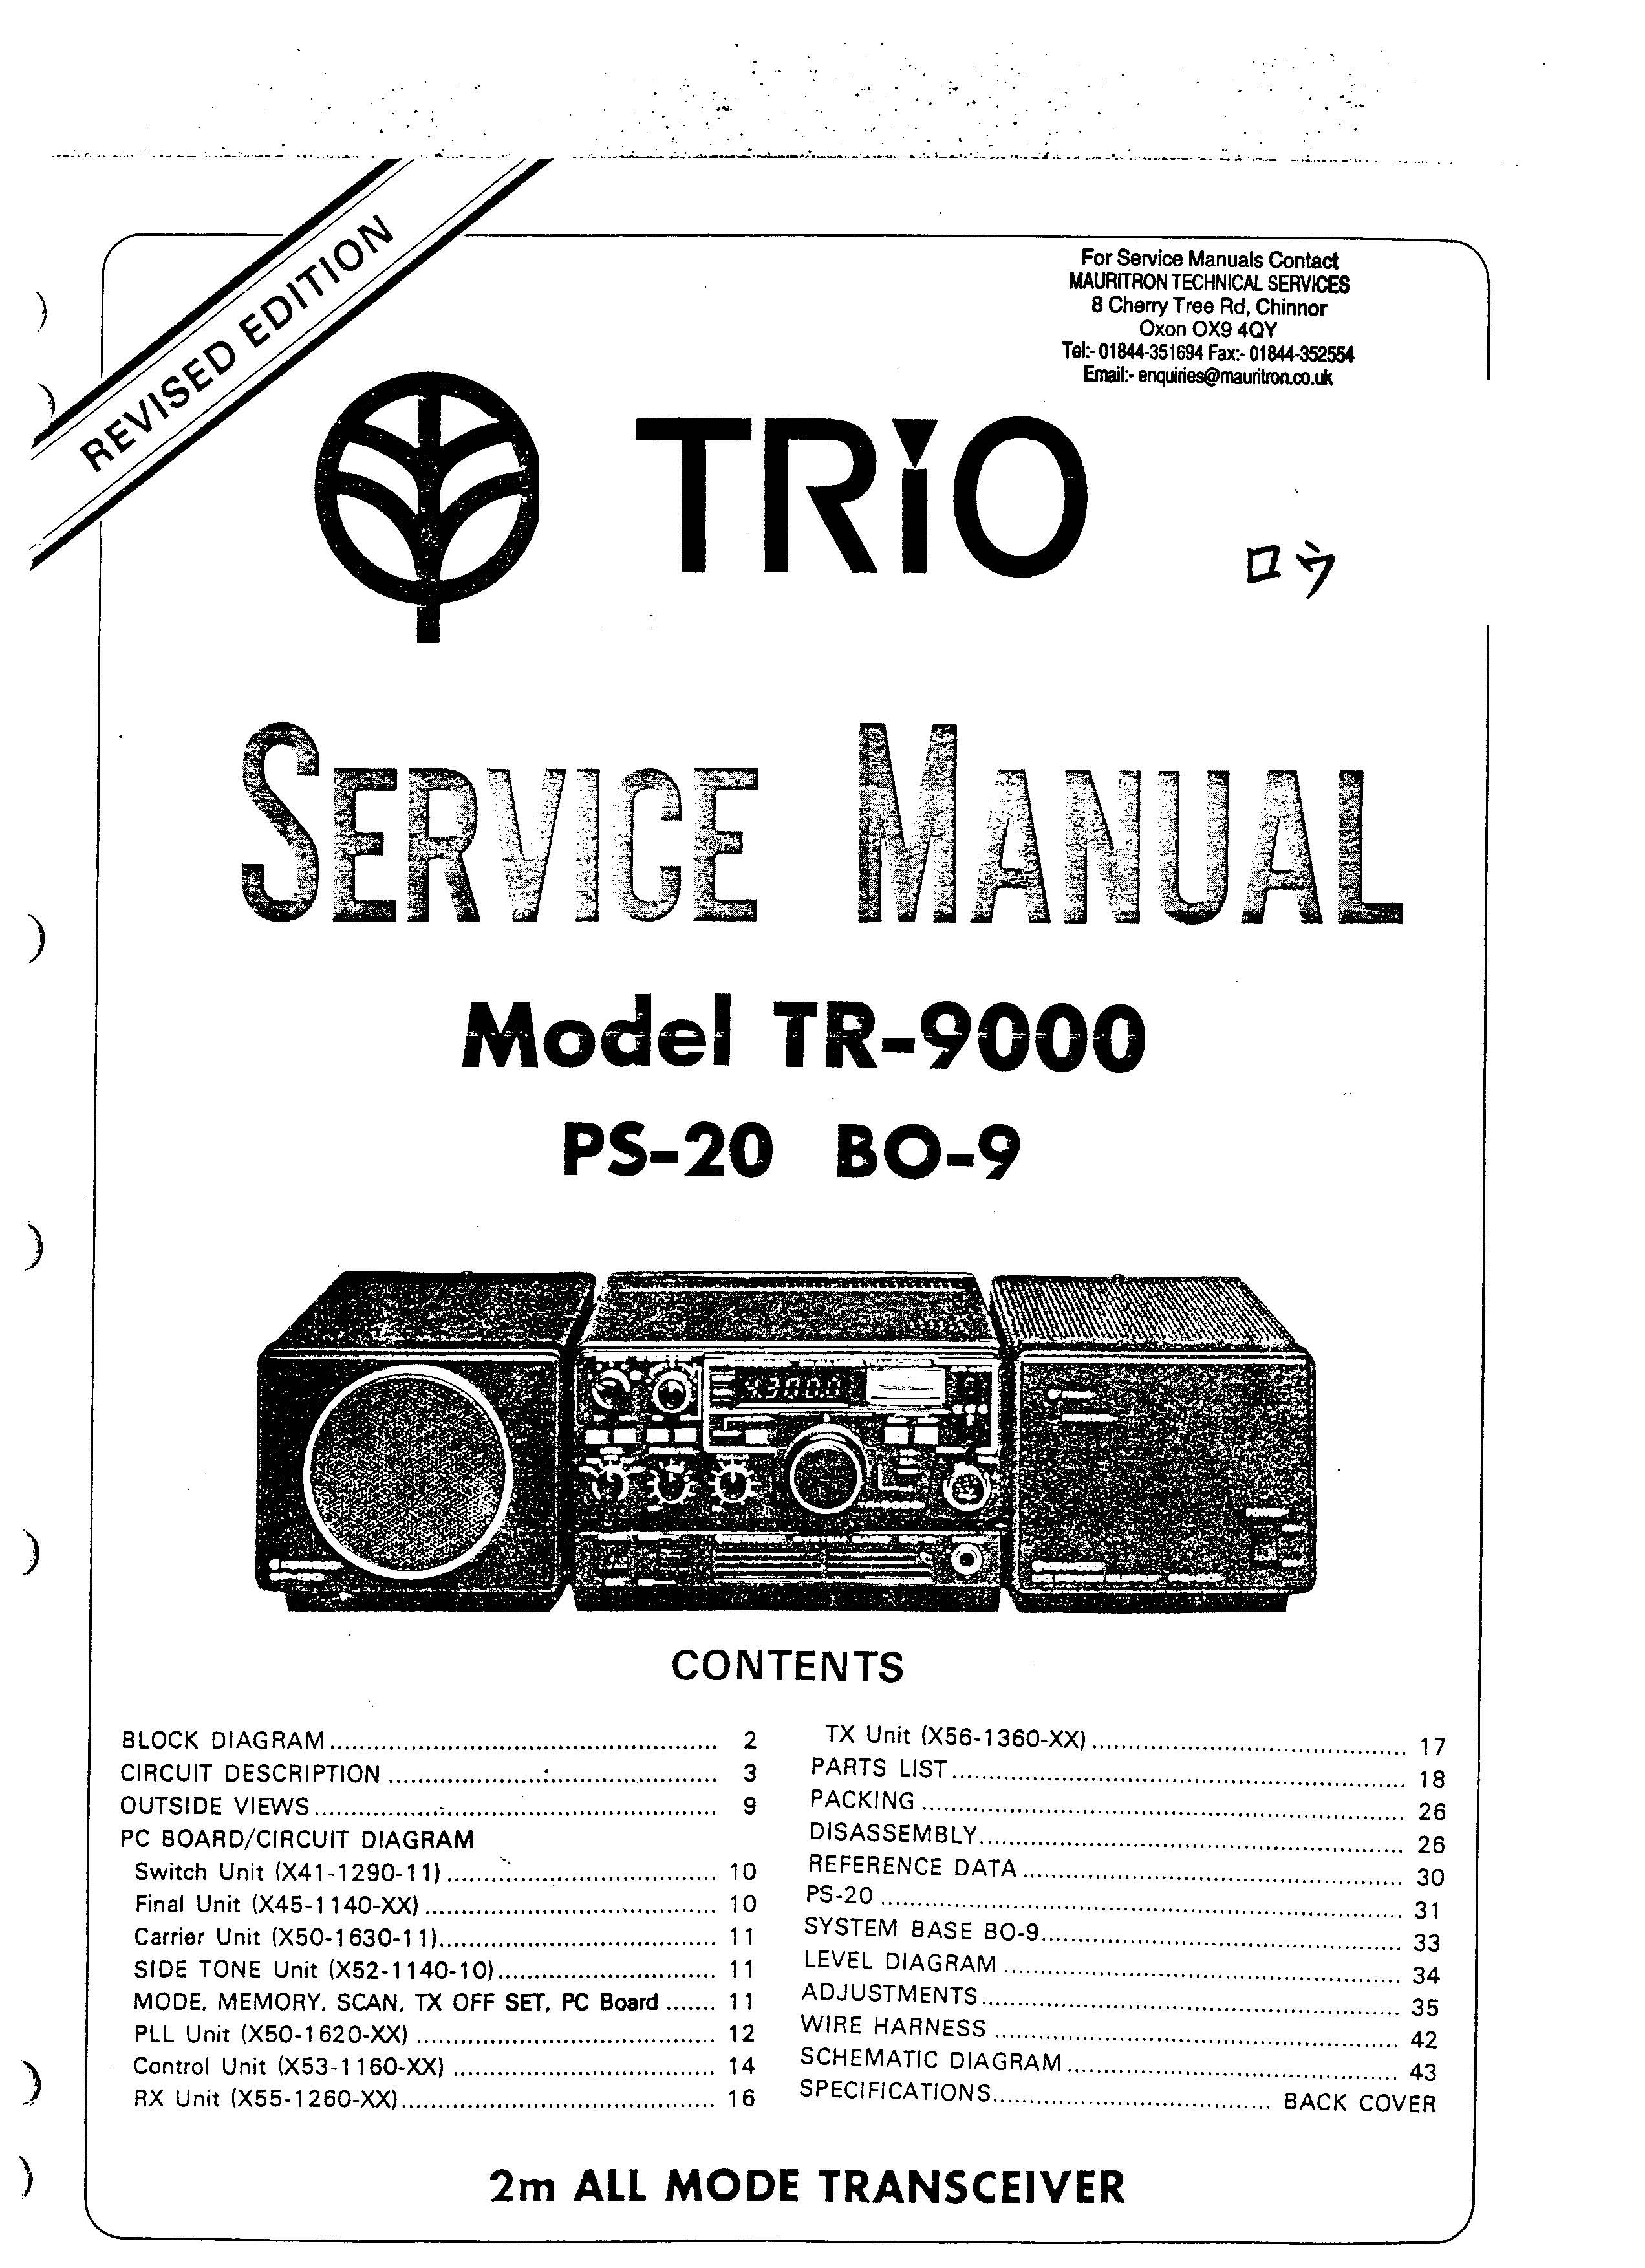 kenwood trio tr9000 ps20 bo9 service manual rh sellfy com Ham Radio 2 Meters